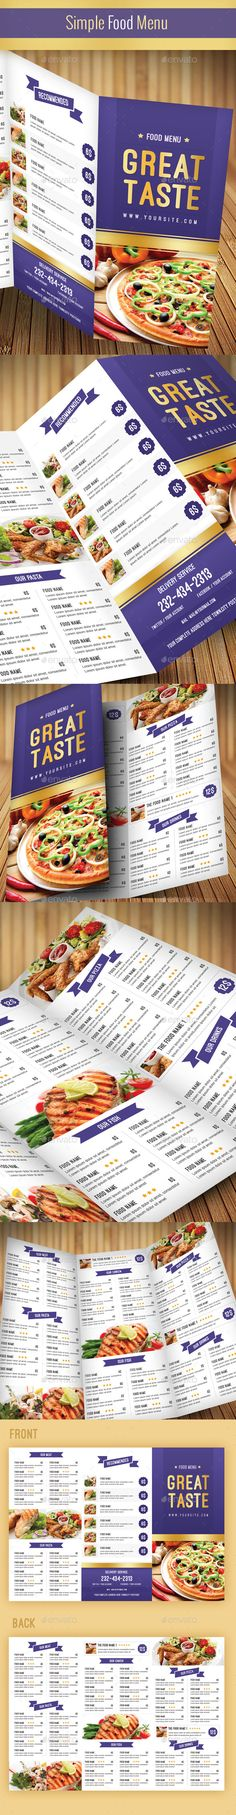 Restaurant and Food Menu Trifold Brochure Food menu, Brochures - food brochure